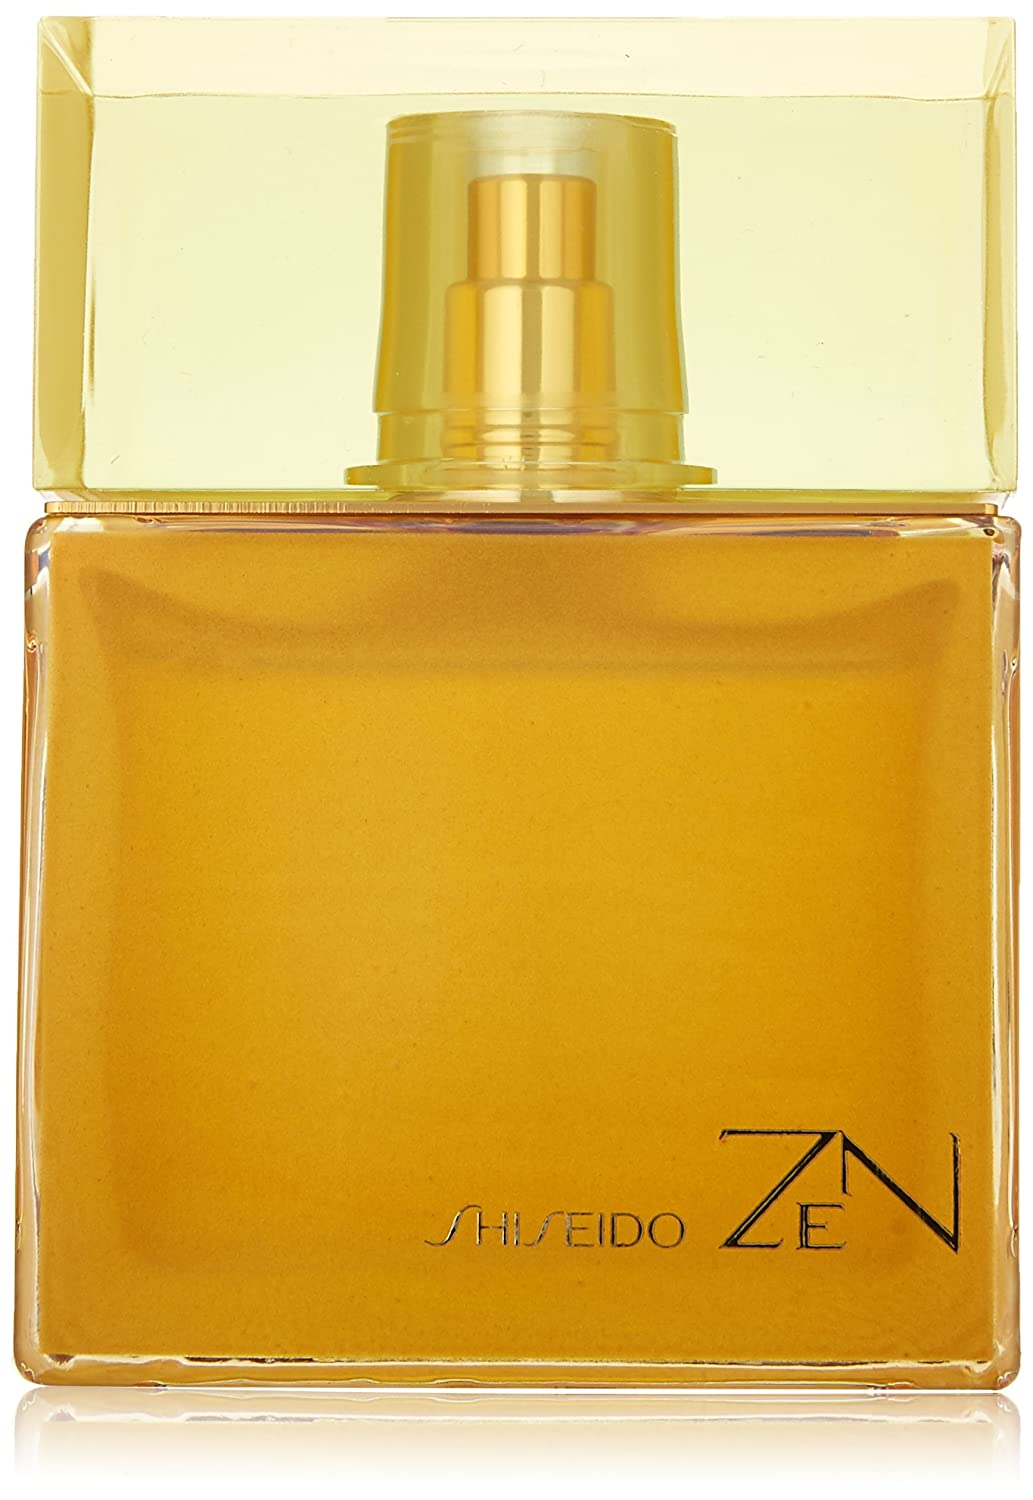 Shiseido Zen (New) by Shiseido for Women. Eau De Parfum Spray 3.3 Ounce